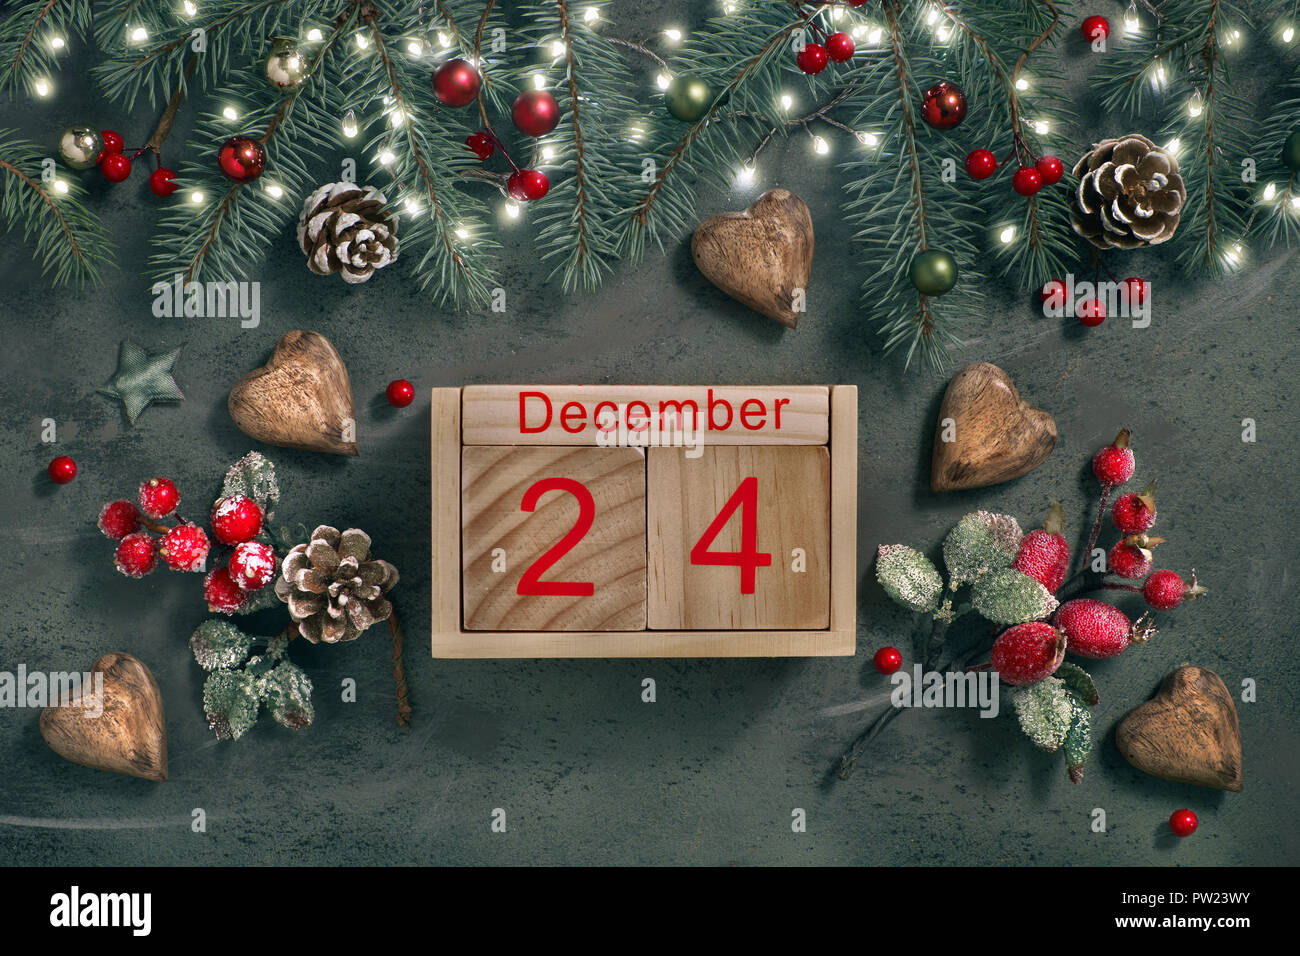 Christmas Eve Date On Calendar, December 24, with Christmas decorations and festive lights on fir twigs, frosted red berries and wooden hearts on gree - Stock Image